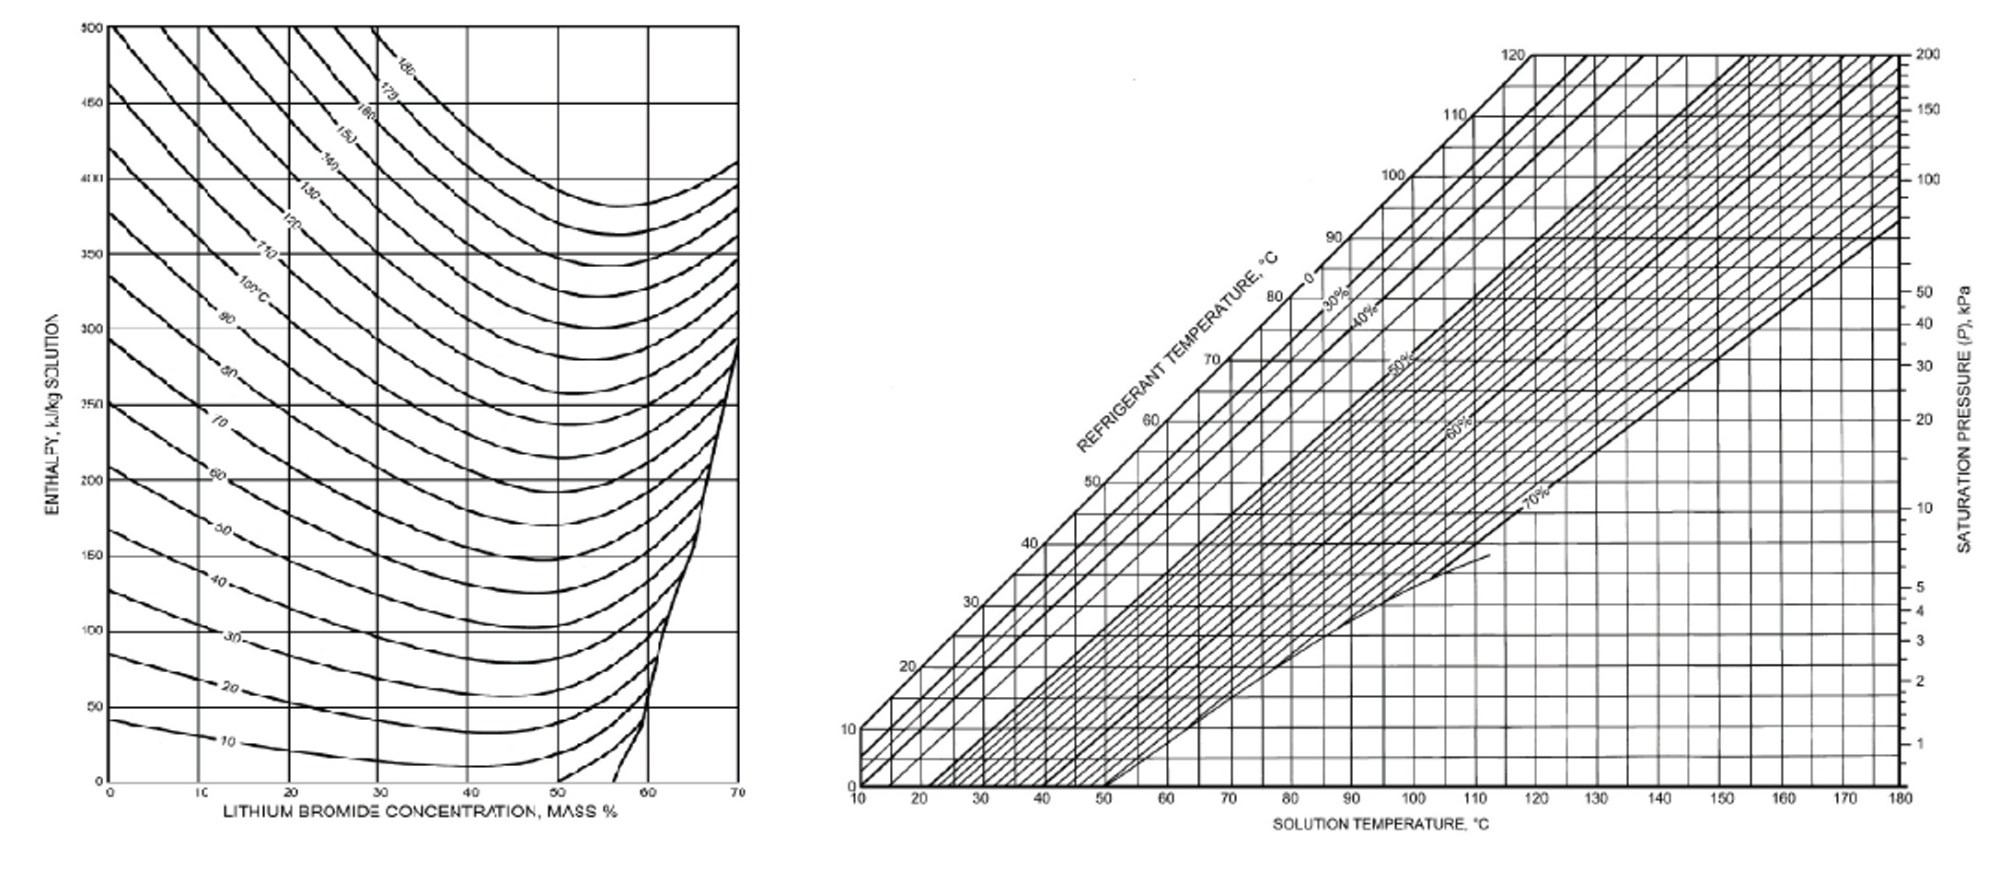 hight resolution of calculation of enthalpy and librh2o concentration from curve fitting equations